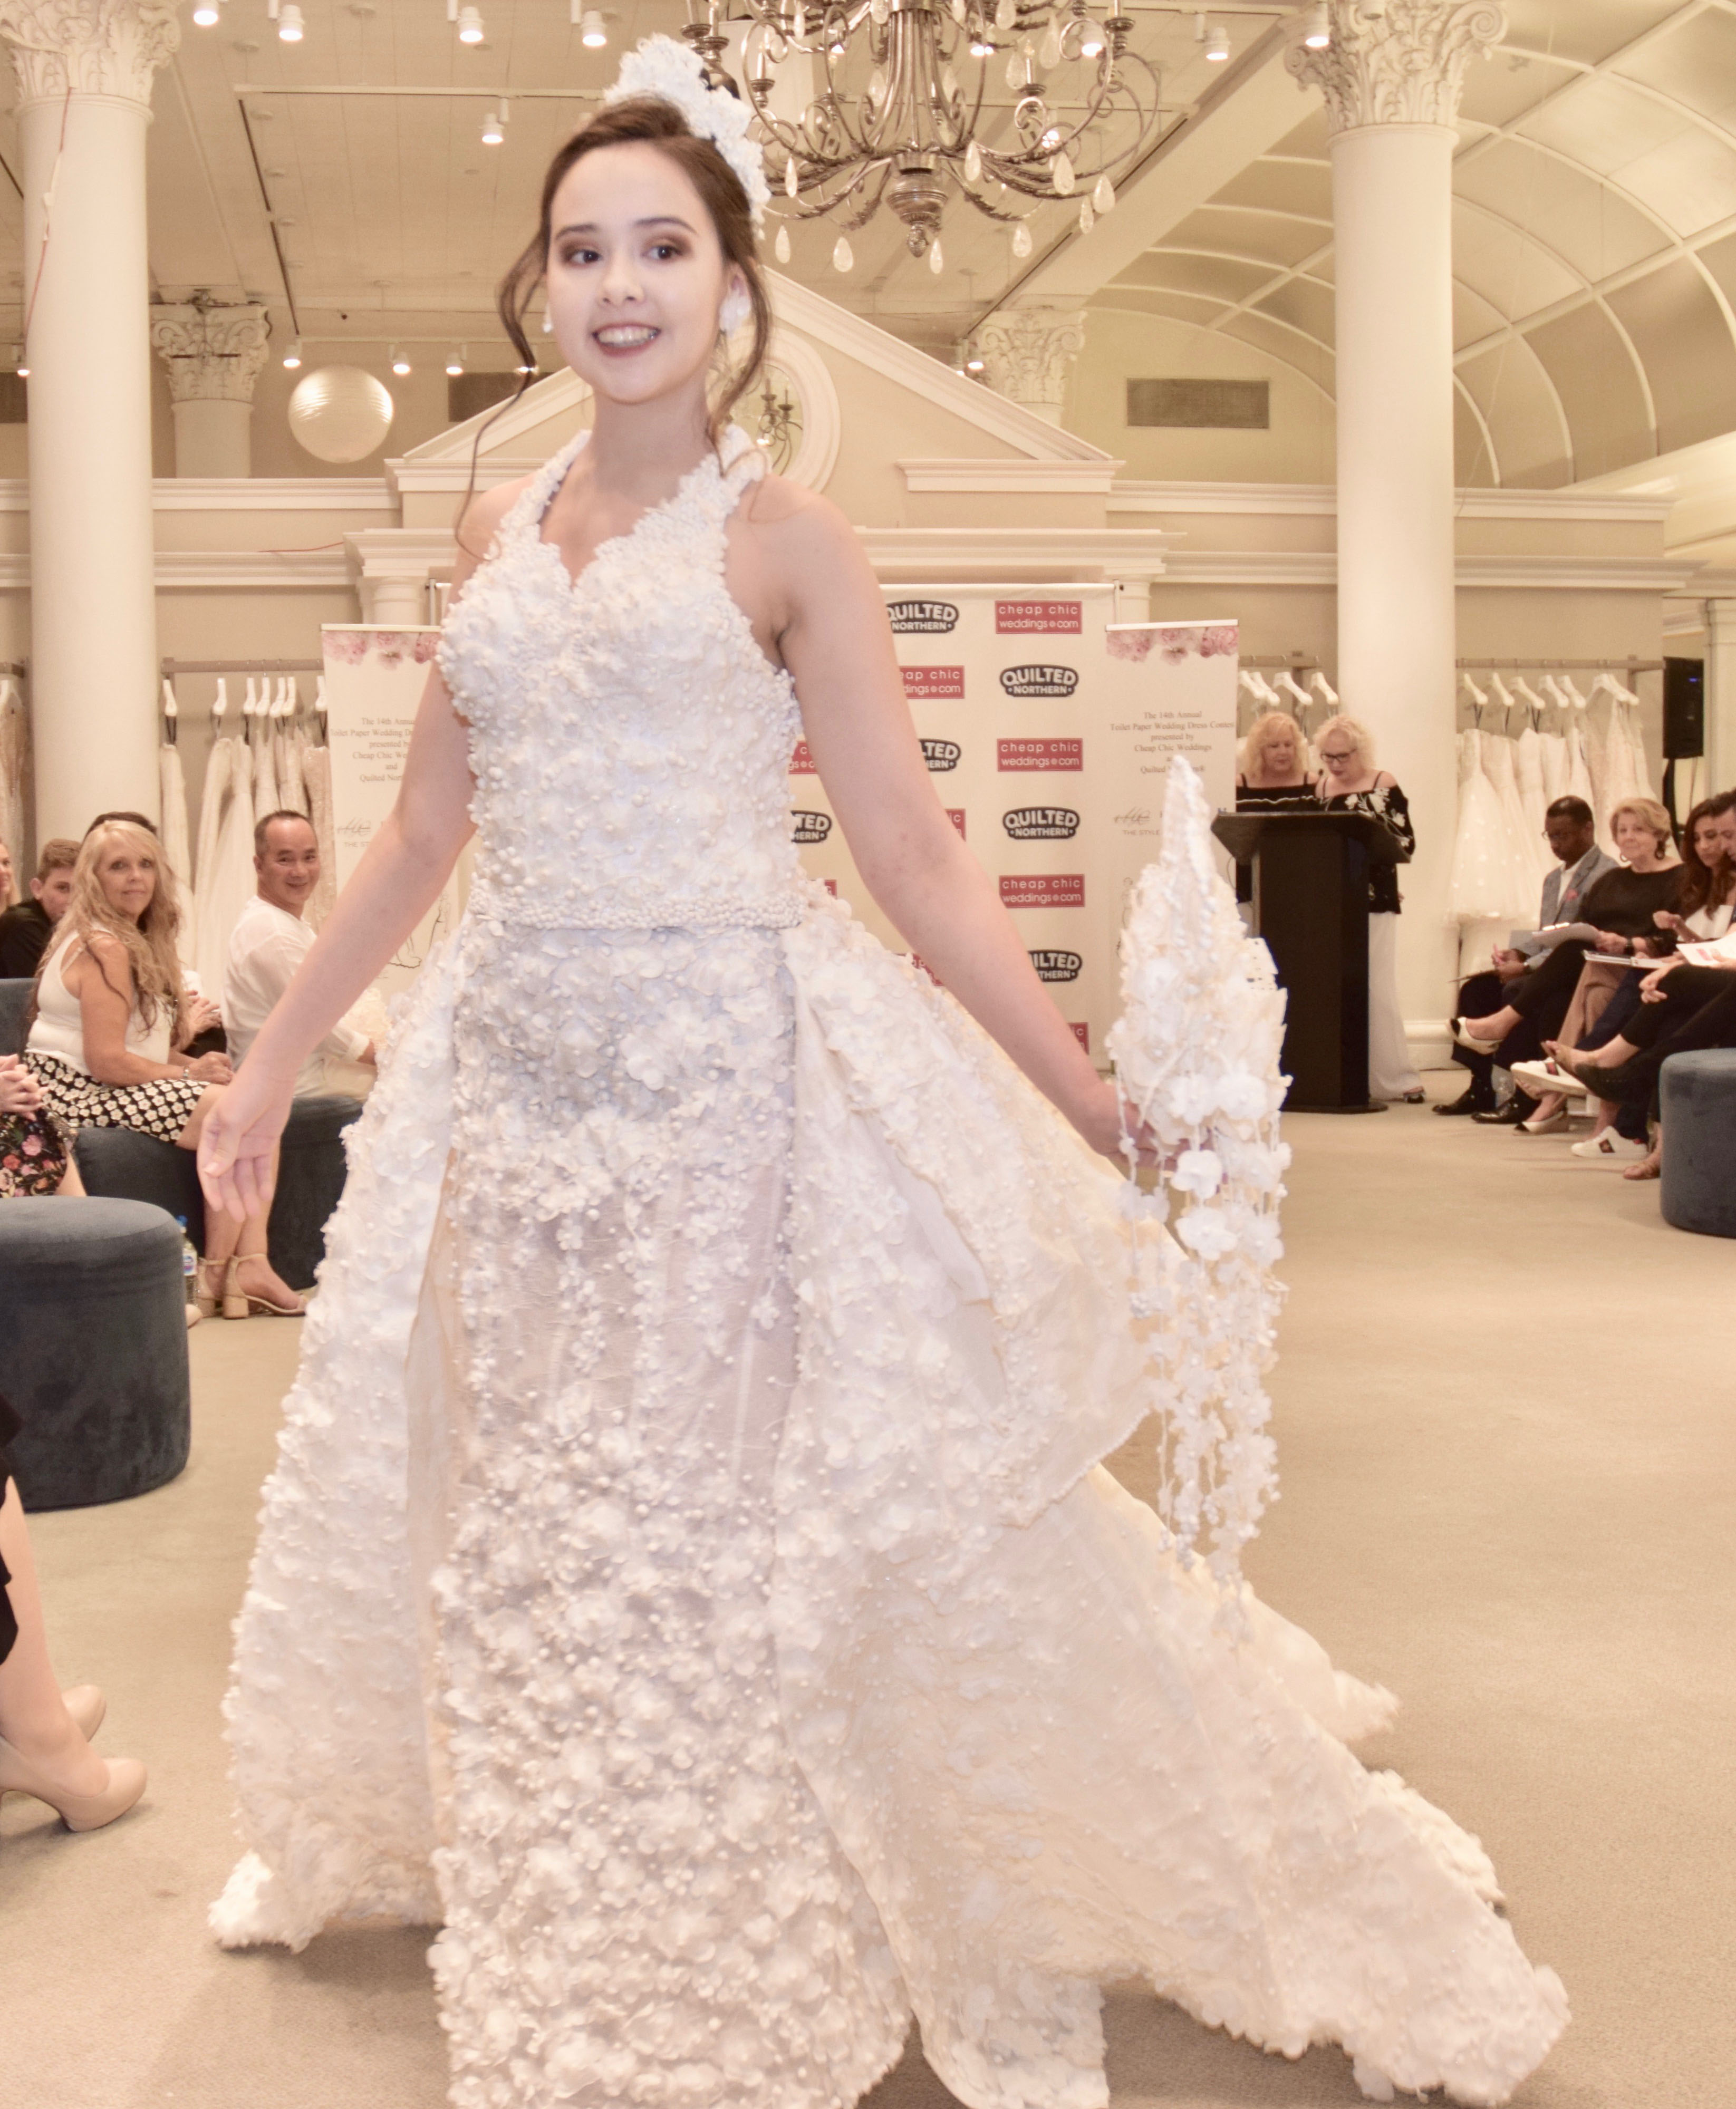 Wedding Dress Create.Making A Wedding Dress Out Of Toilet Paper